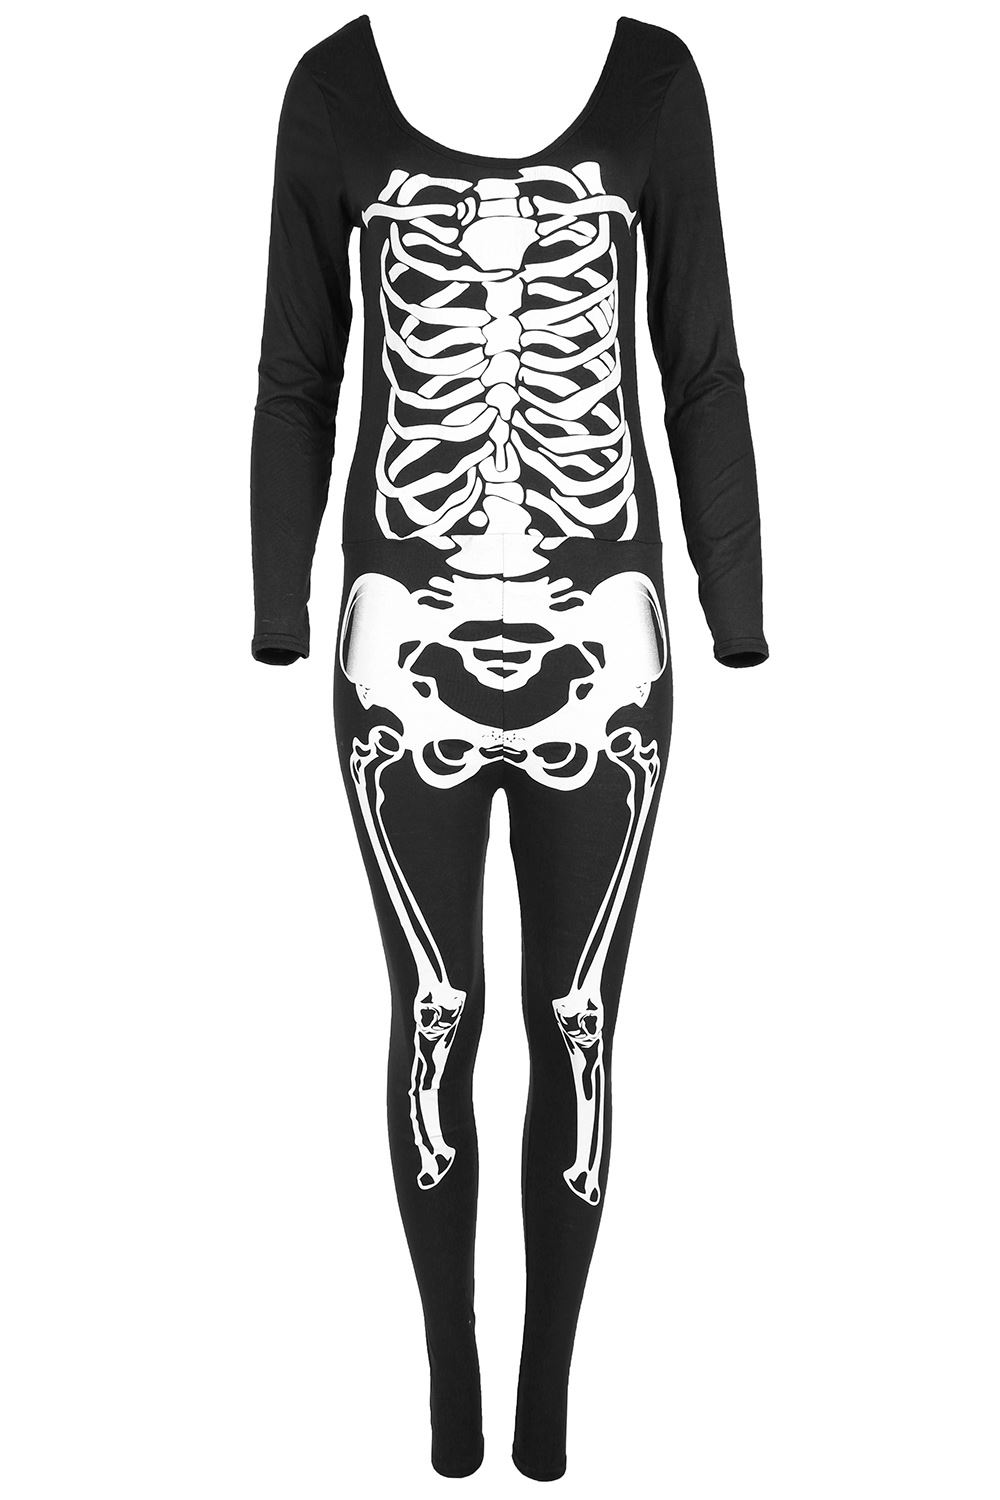 Womens Adult Black And Bone Skull Skeleton Catsuit Halloween Fancy Dress Costume Kostüme Kleidung & Accessoires